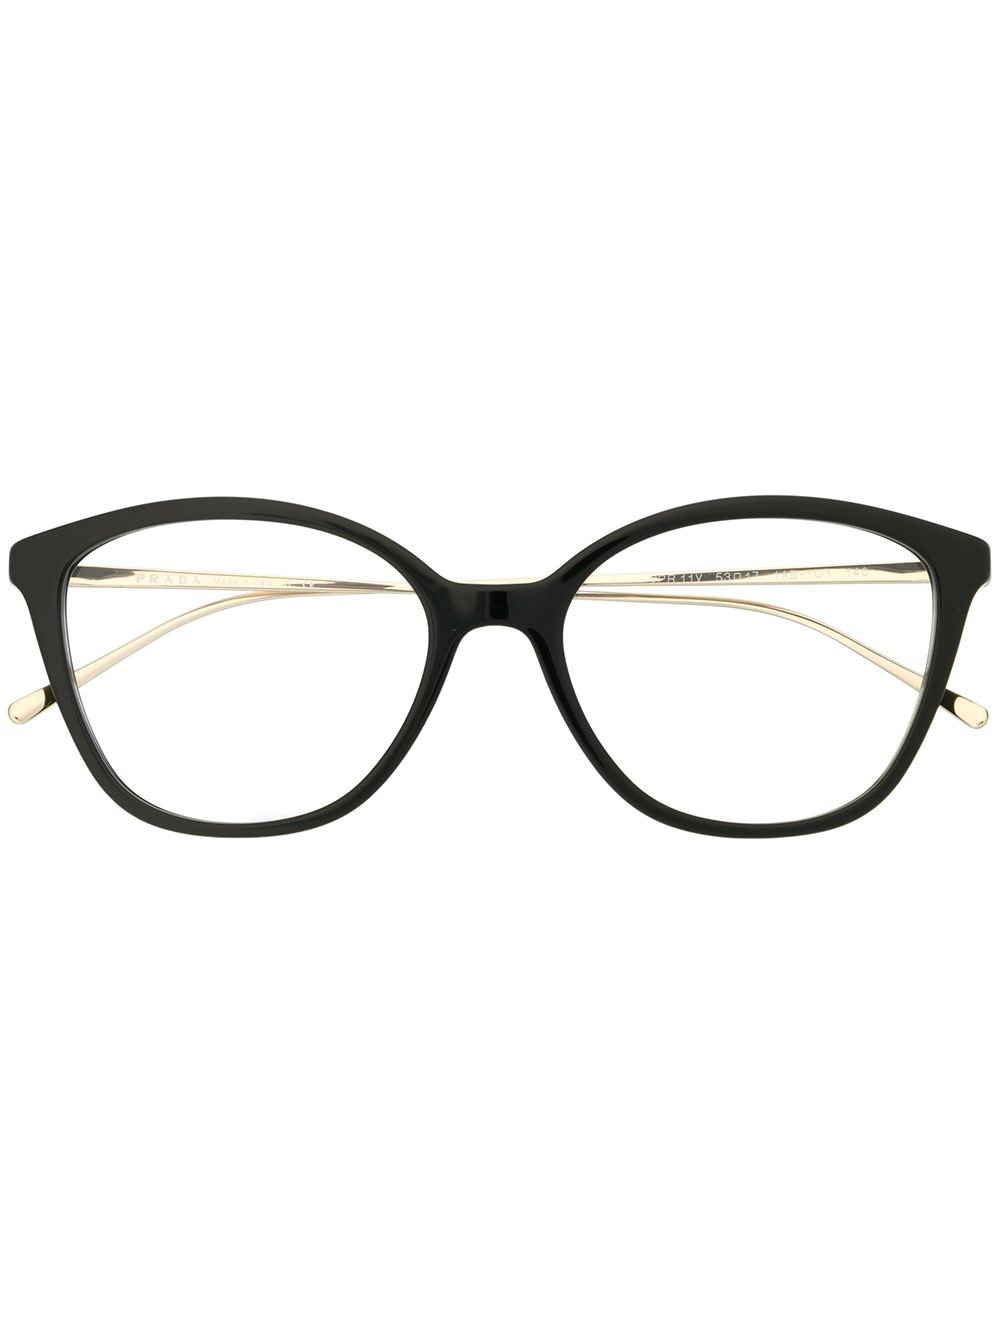 830e1935a7 Prada Eyewear Square-Frame Glasses - Black